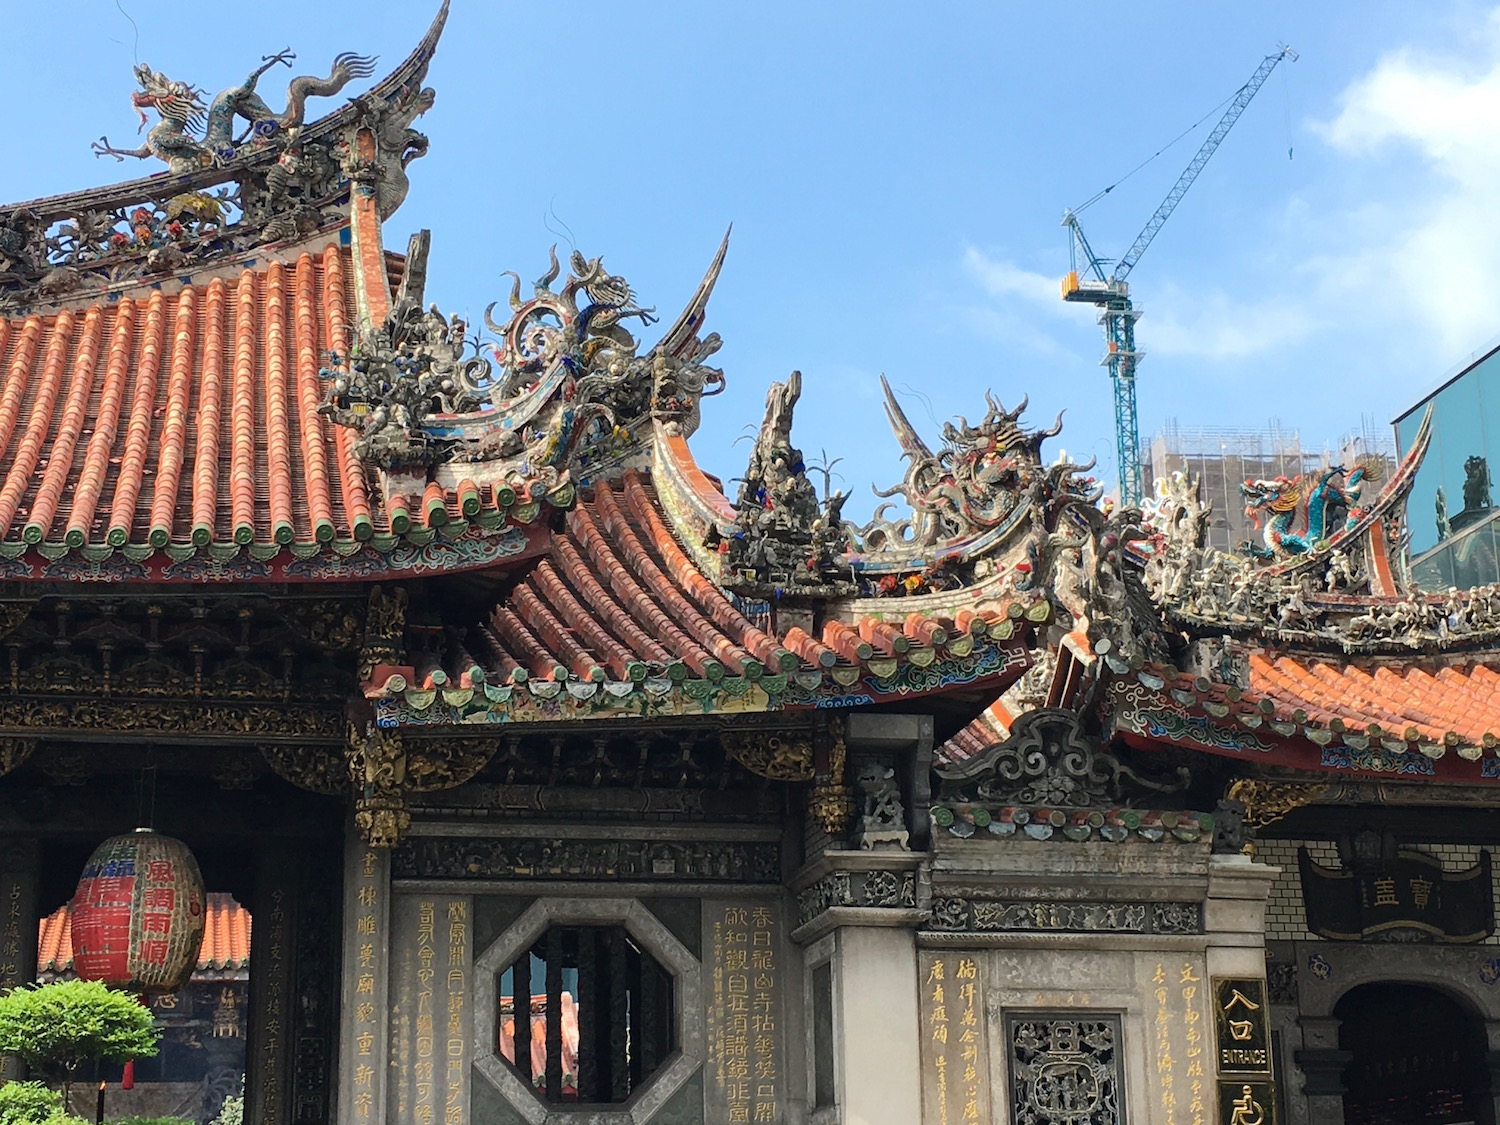 Lively Longshan Temple, established in 1738, surrounded by glass towers and new construction